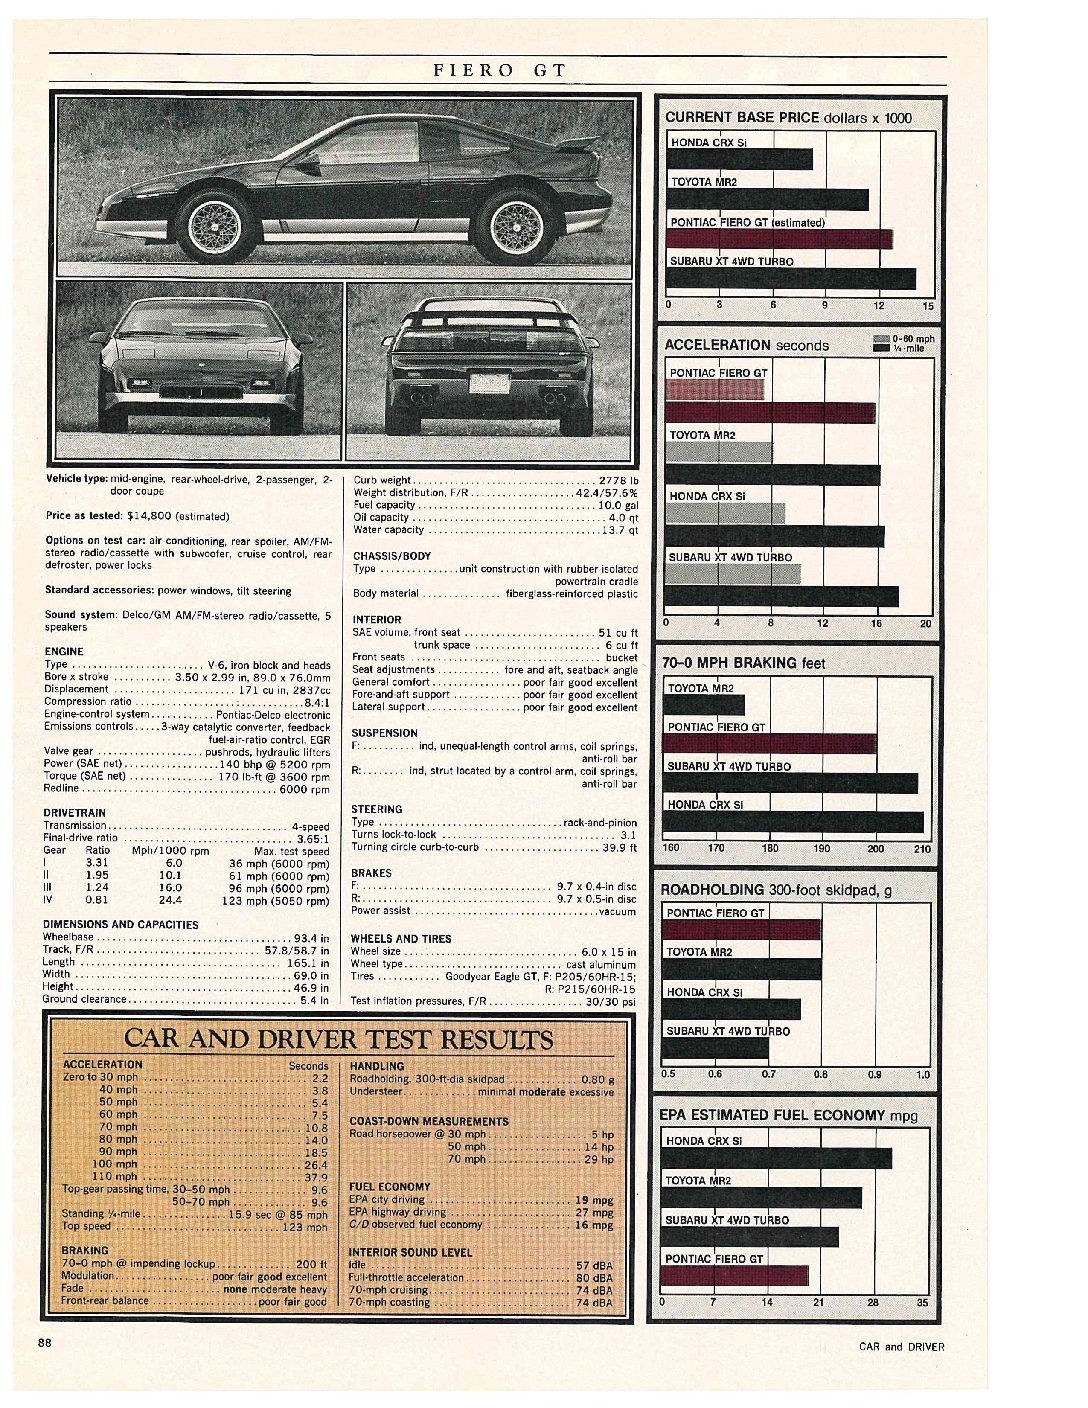 Pontiac Fiero GT review by Car and Driver magazine page 5.